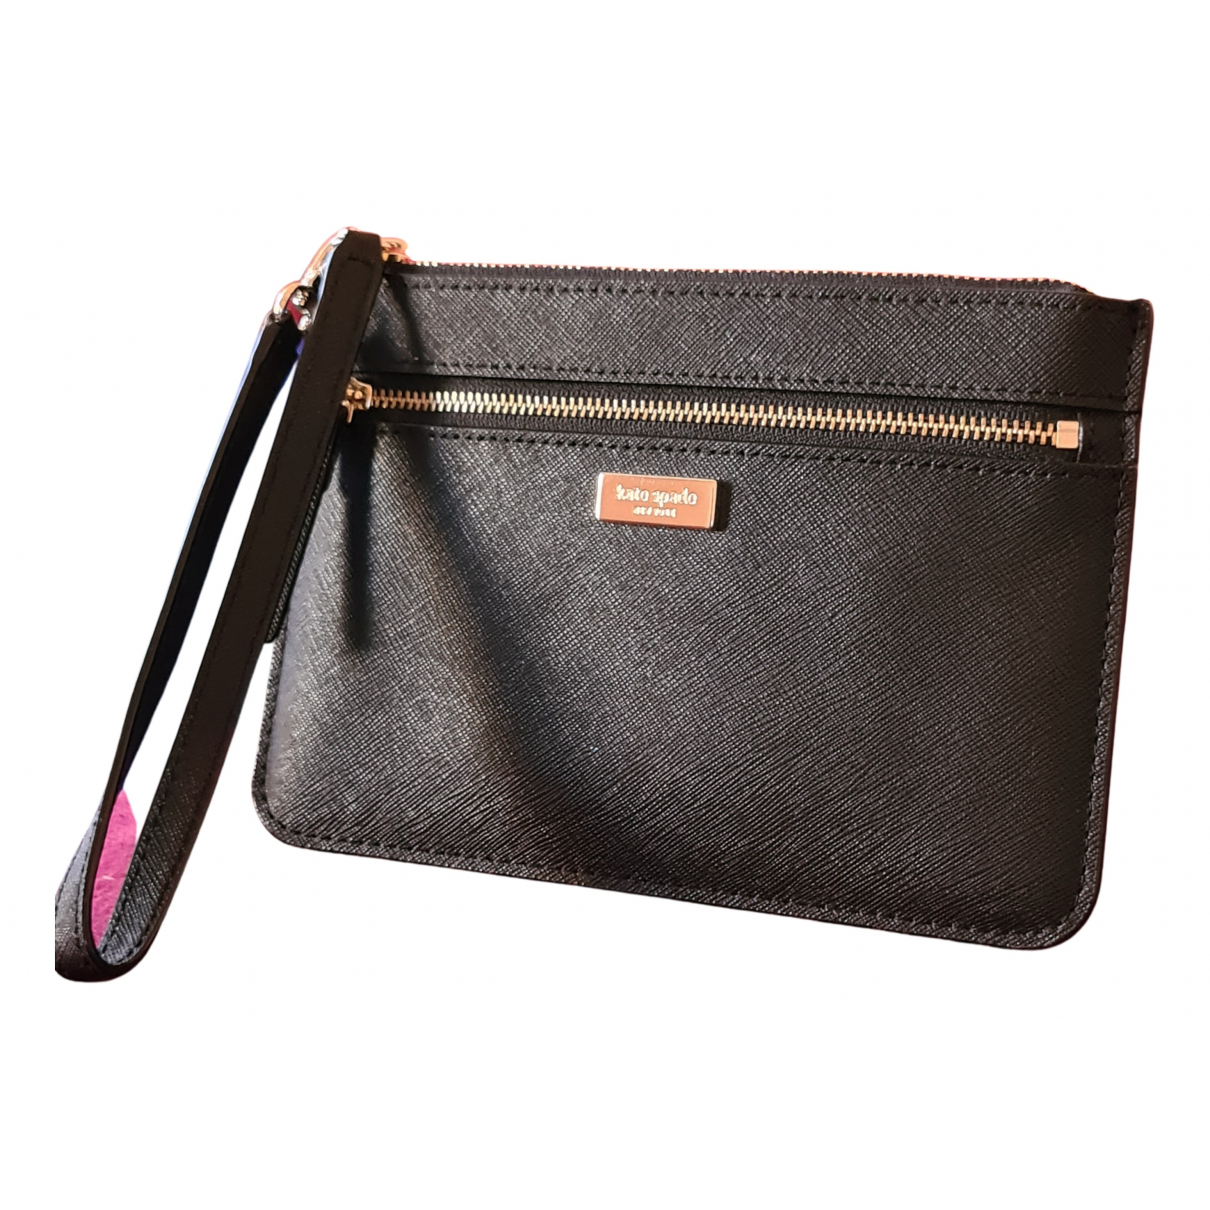 Kate Spade N Black Leather Purses, wallet & cases for Women N